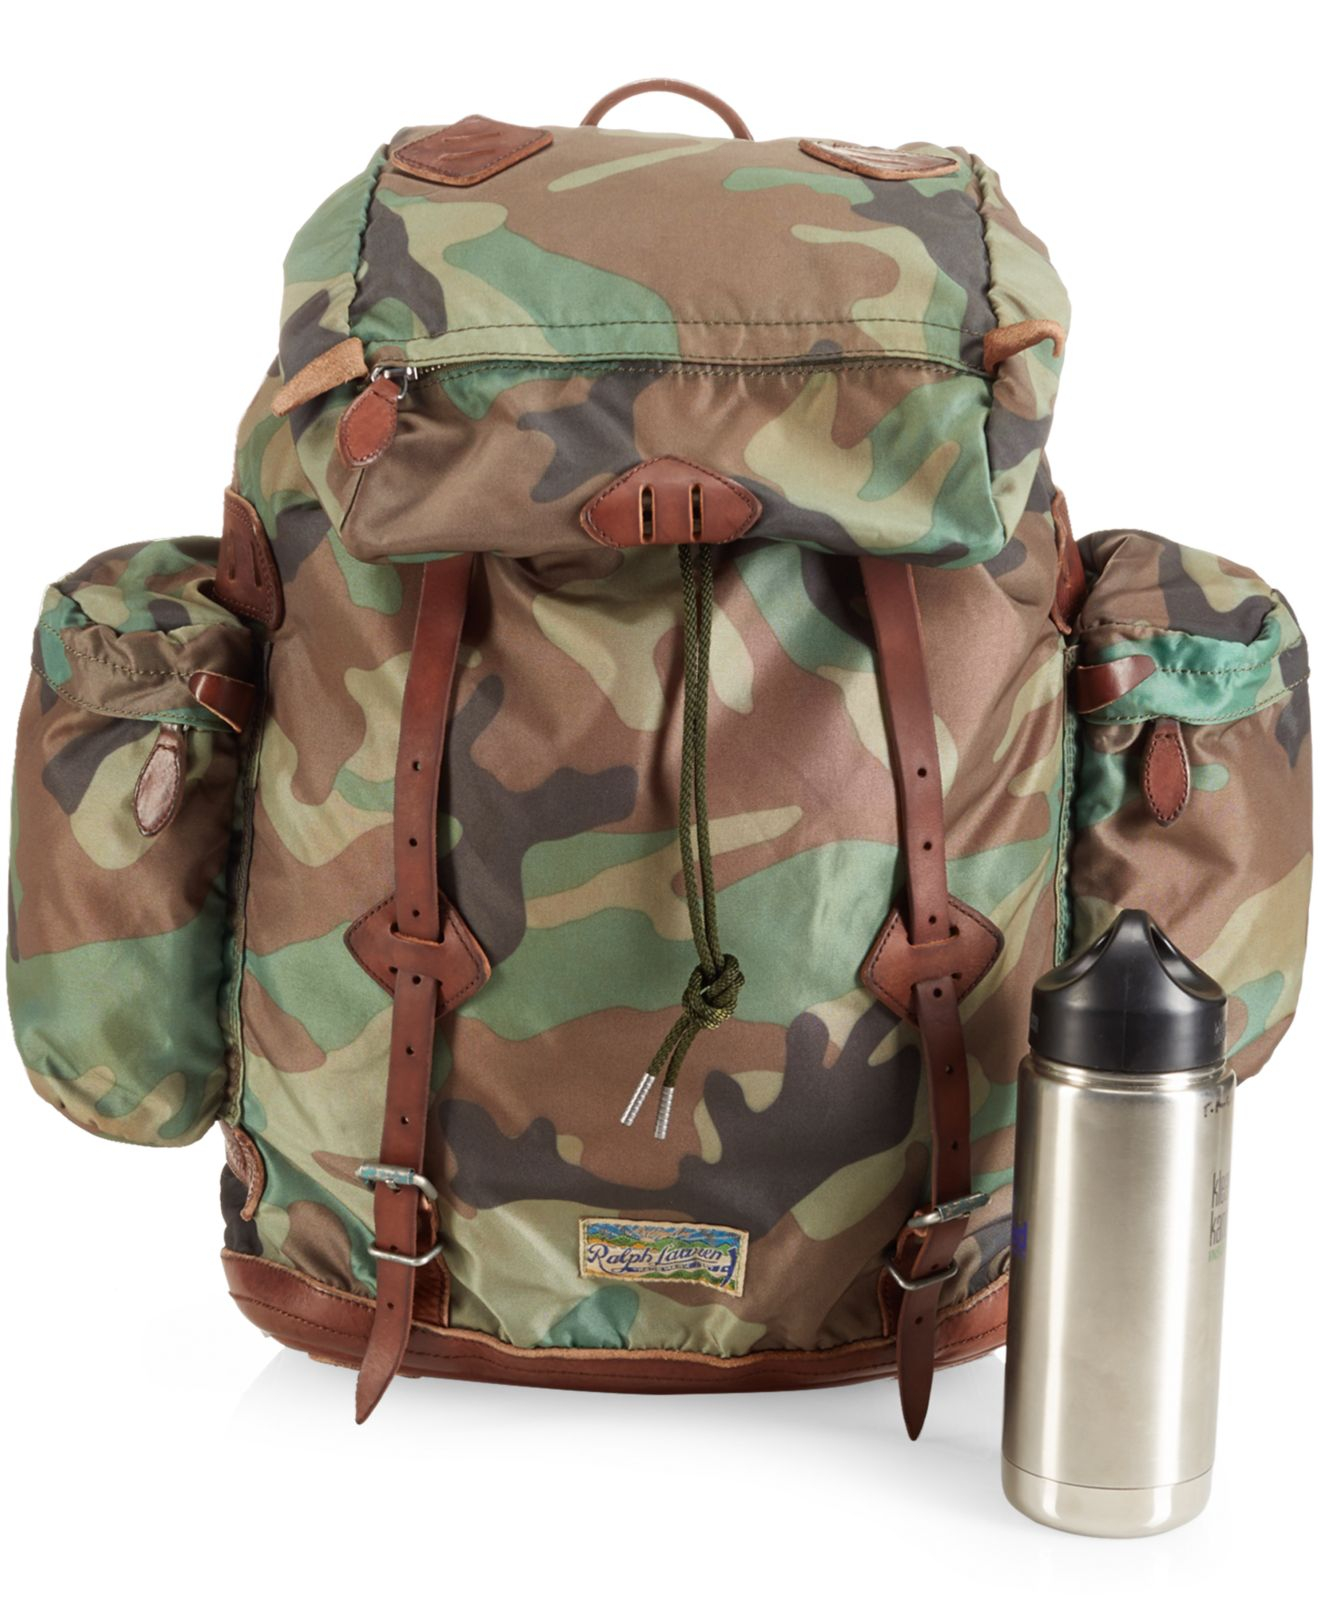 704a5df76993 Lyst - Polo Ralph Lauren Yosemite Nylon Camo Backpack in Green for Men